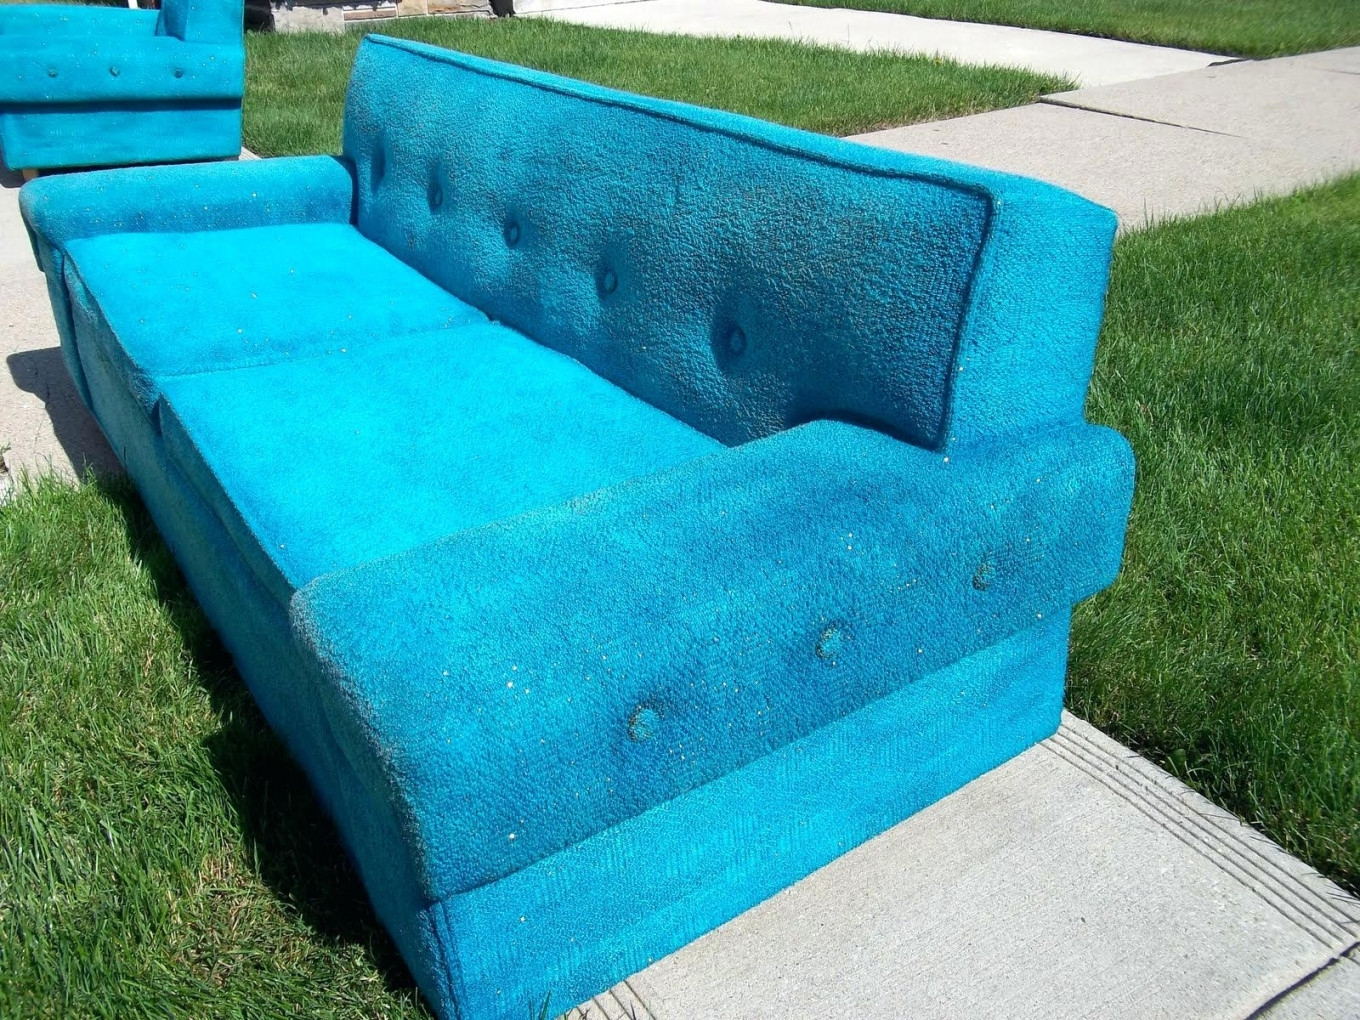 2017 Articles With Overstock Outdoor Chaise Lounge Cushions Tag Inside Regarding Overstock Outdoor Chaise Lounge Chairs (View 1 of 15)